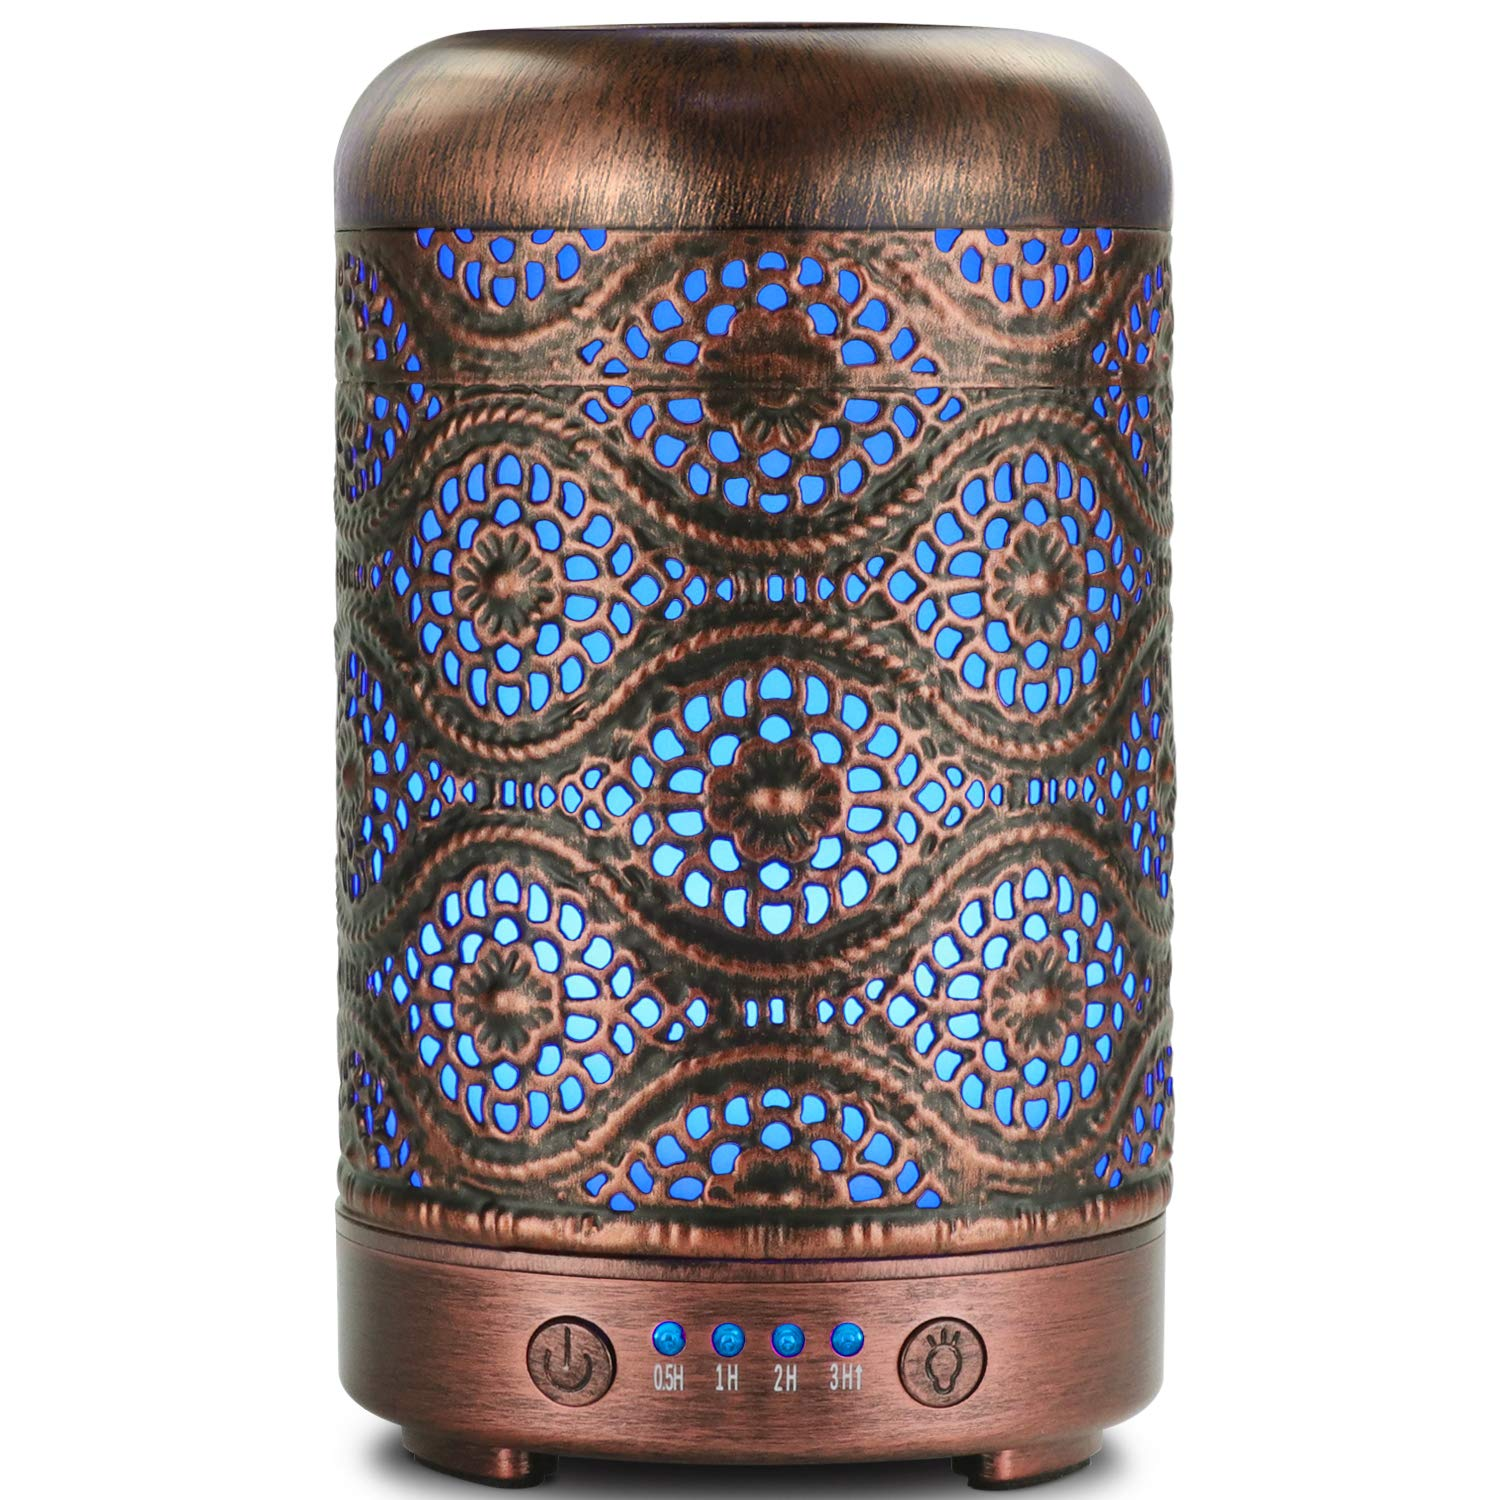 Ultrasonic Cool Mist Essential Oil Diffuser, ARVIDSSON Metal Aromatherapy Diffusers for Essential Oils, Cool Mist Humidifier with 7 Colors LED Night Light for Home, Office by ARVIDSSON